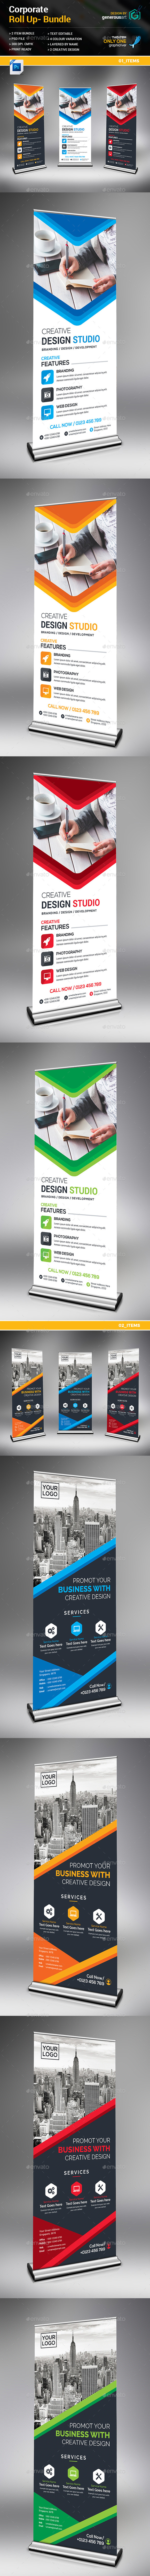 GraphicRiver Roll-Up Banner Bundle 2 in 1 21147074